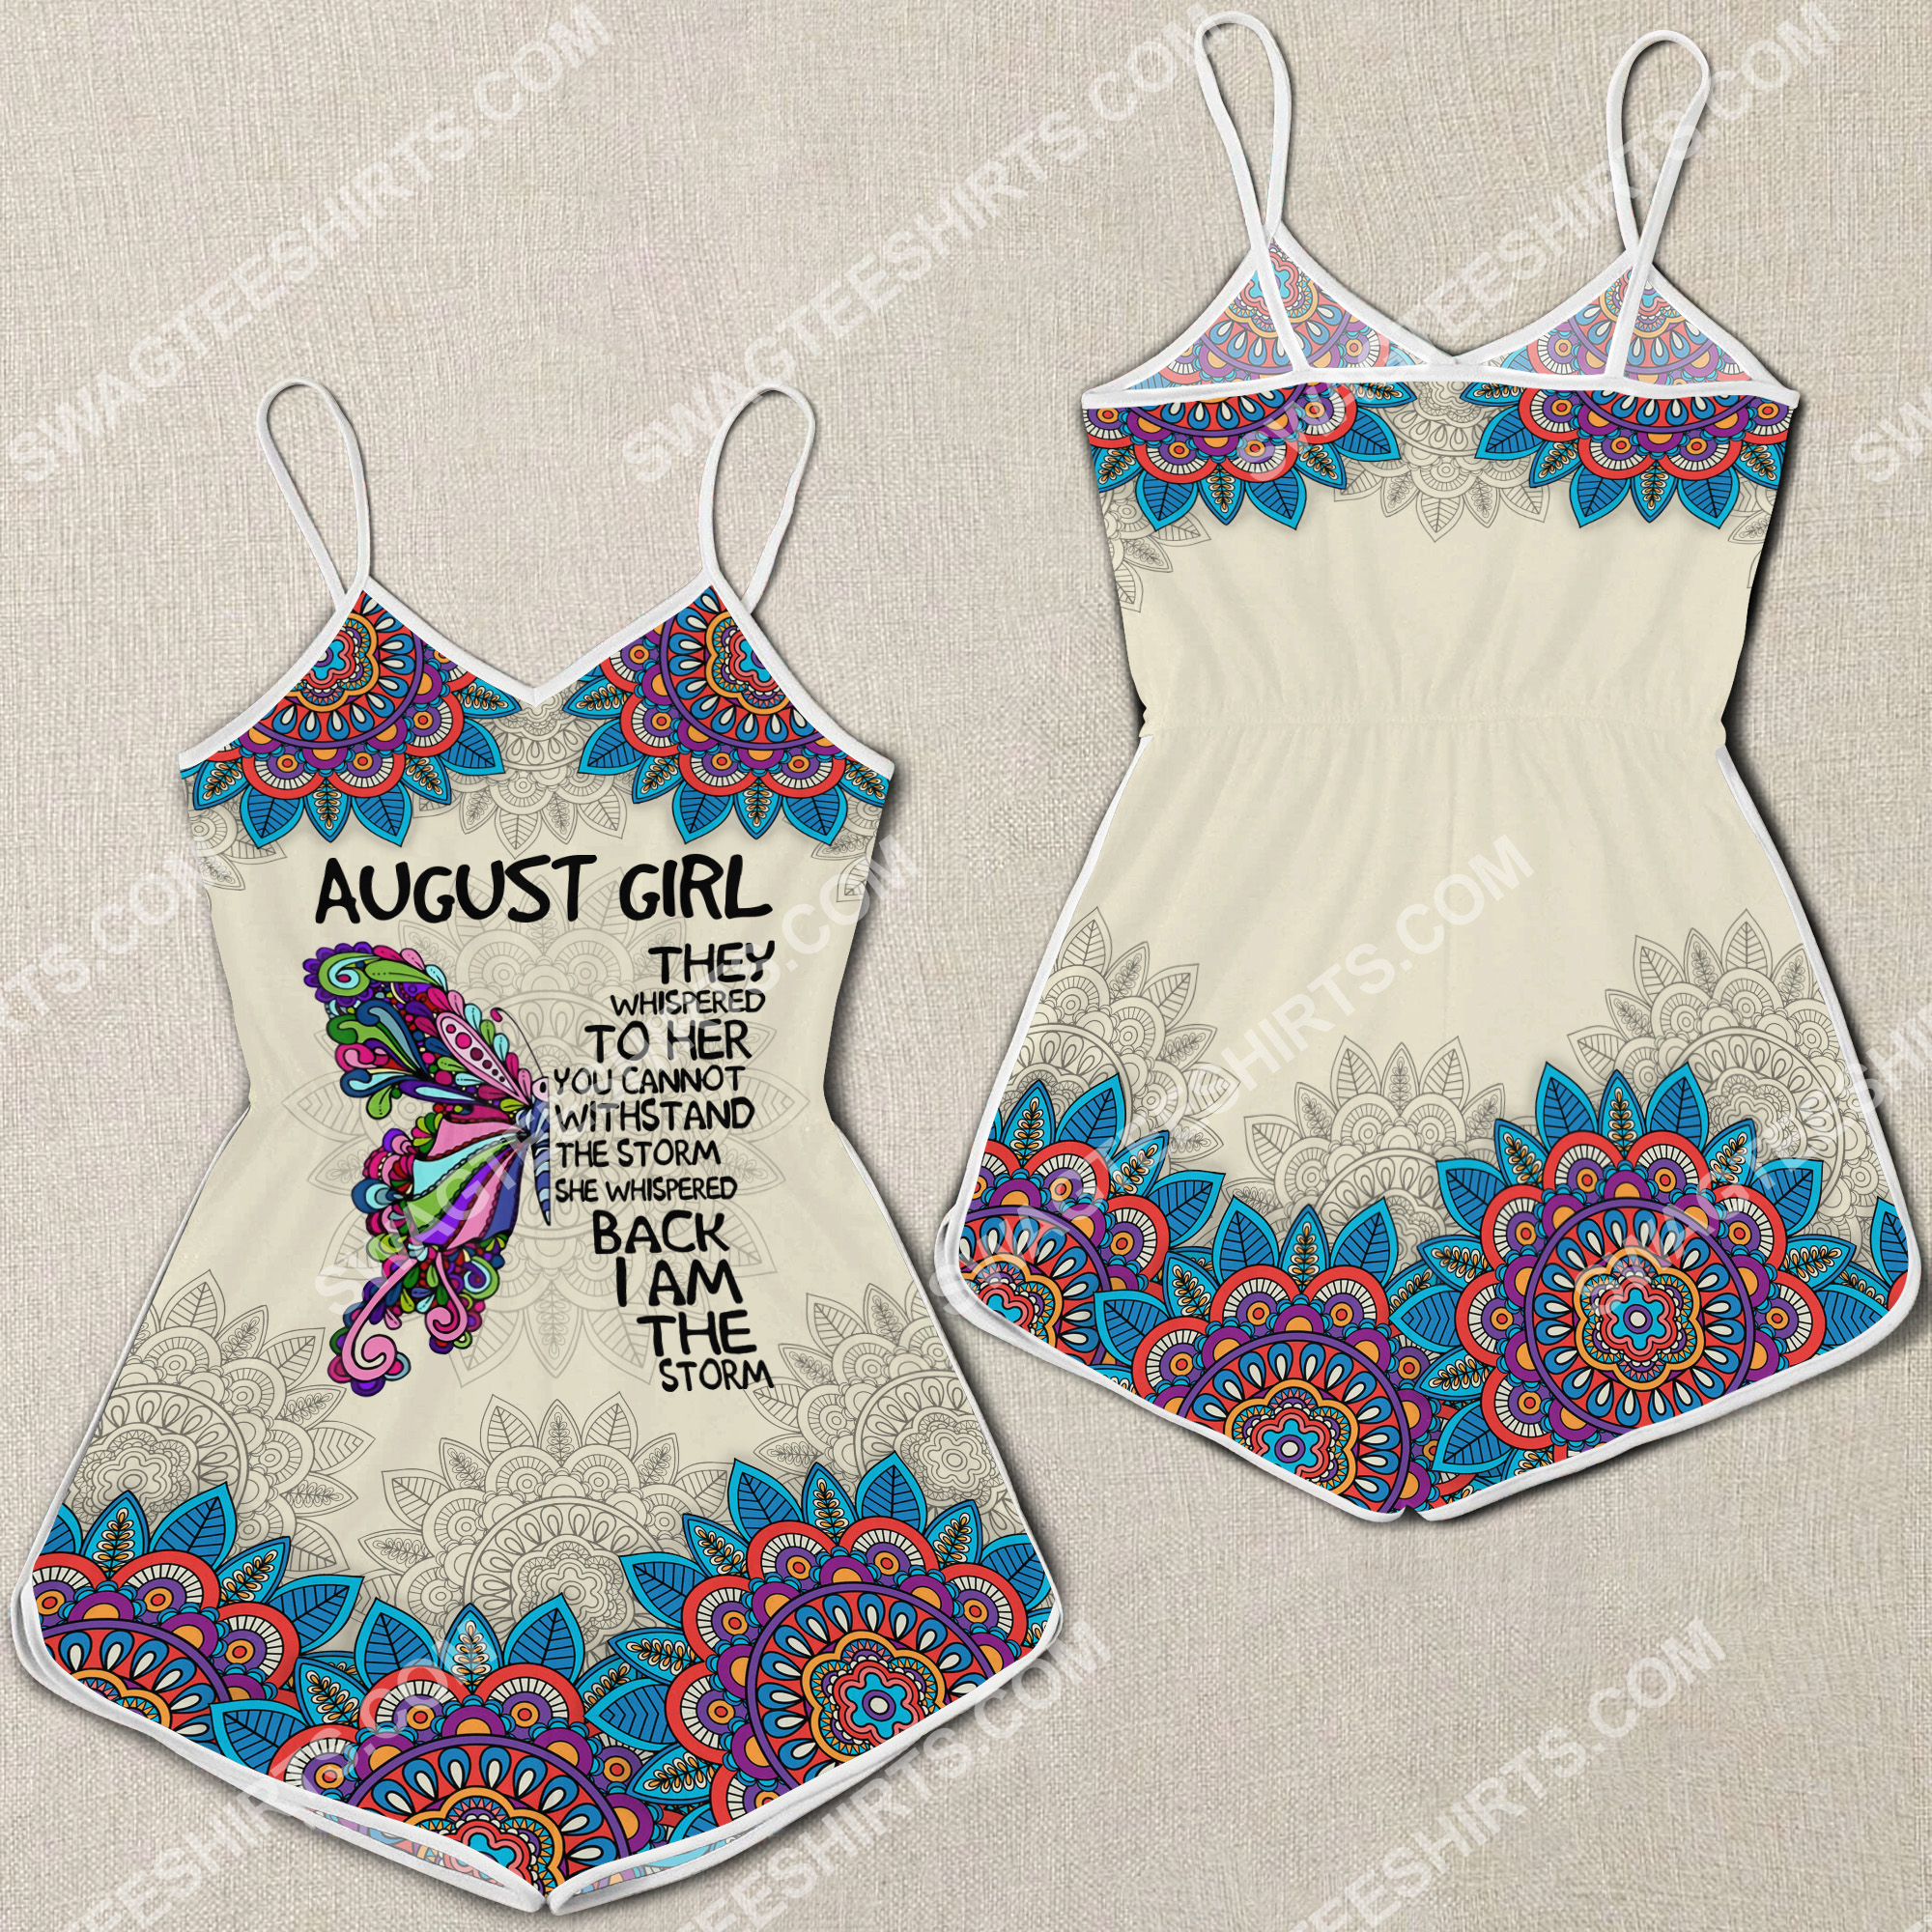 august girl they whispered to her you cannot withstand the storm rompers 2(1) - Copy